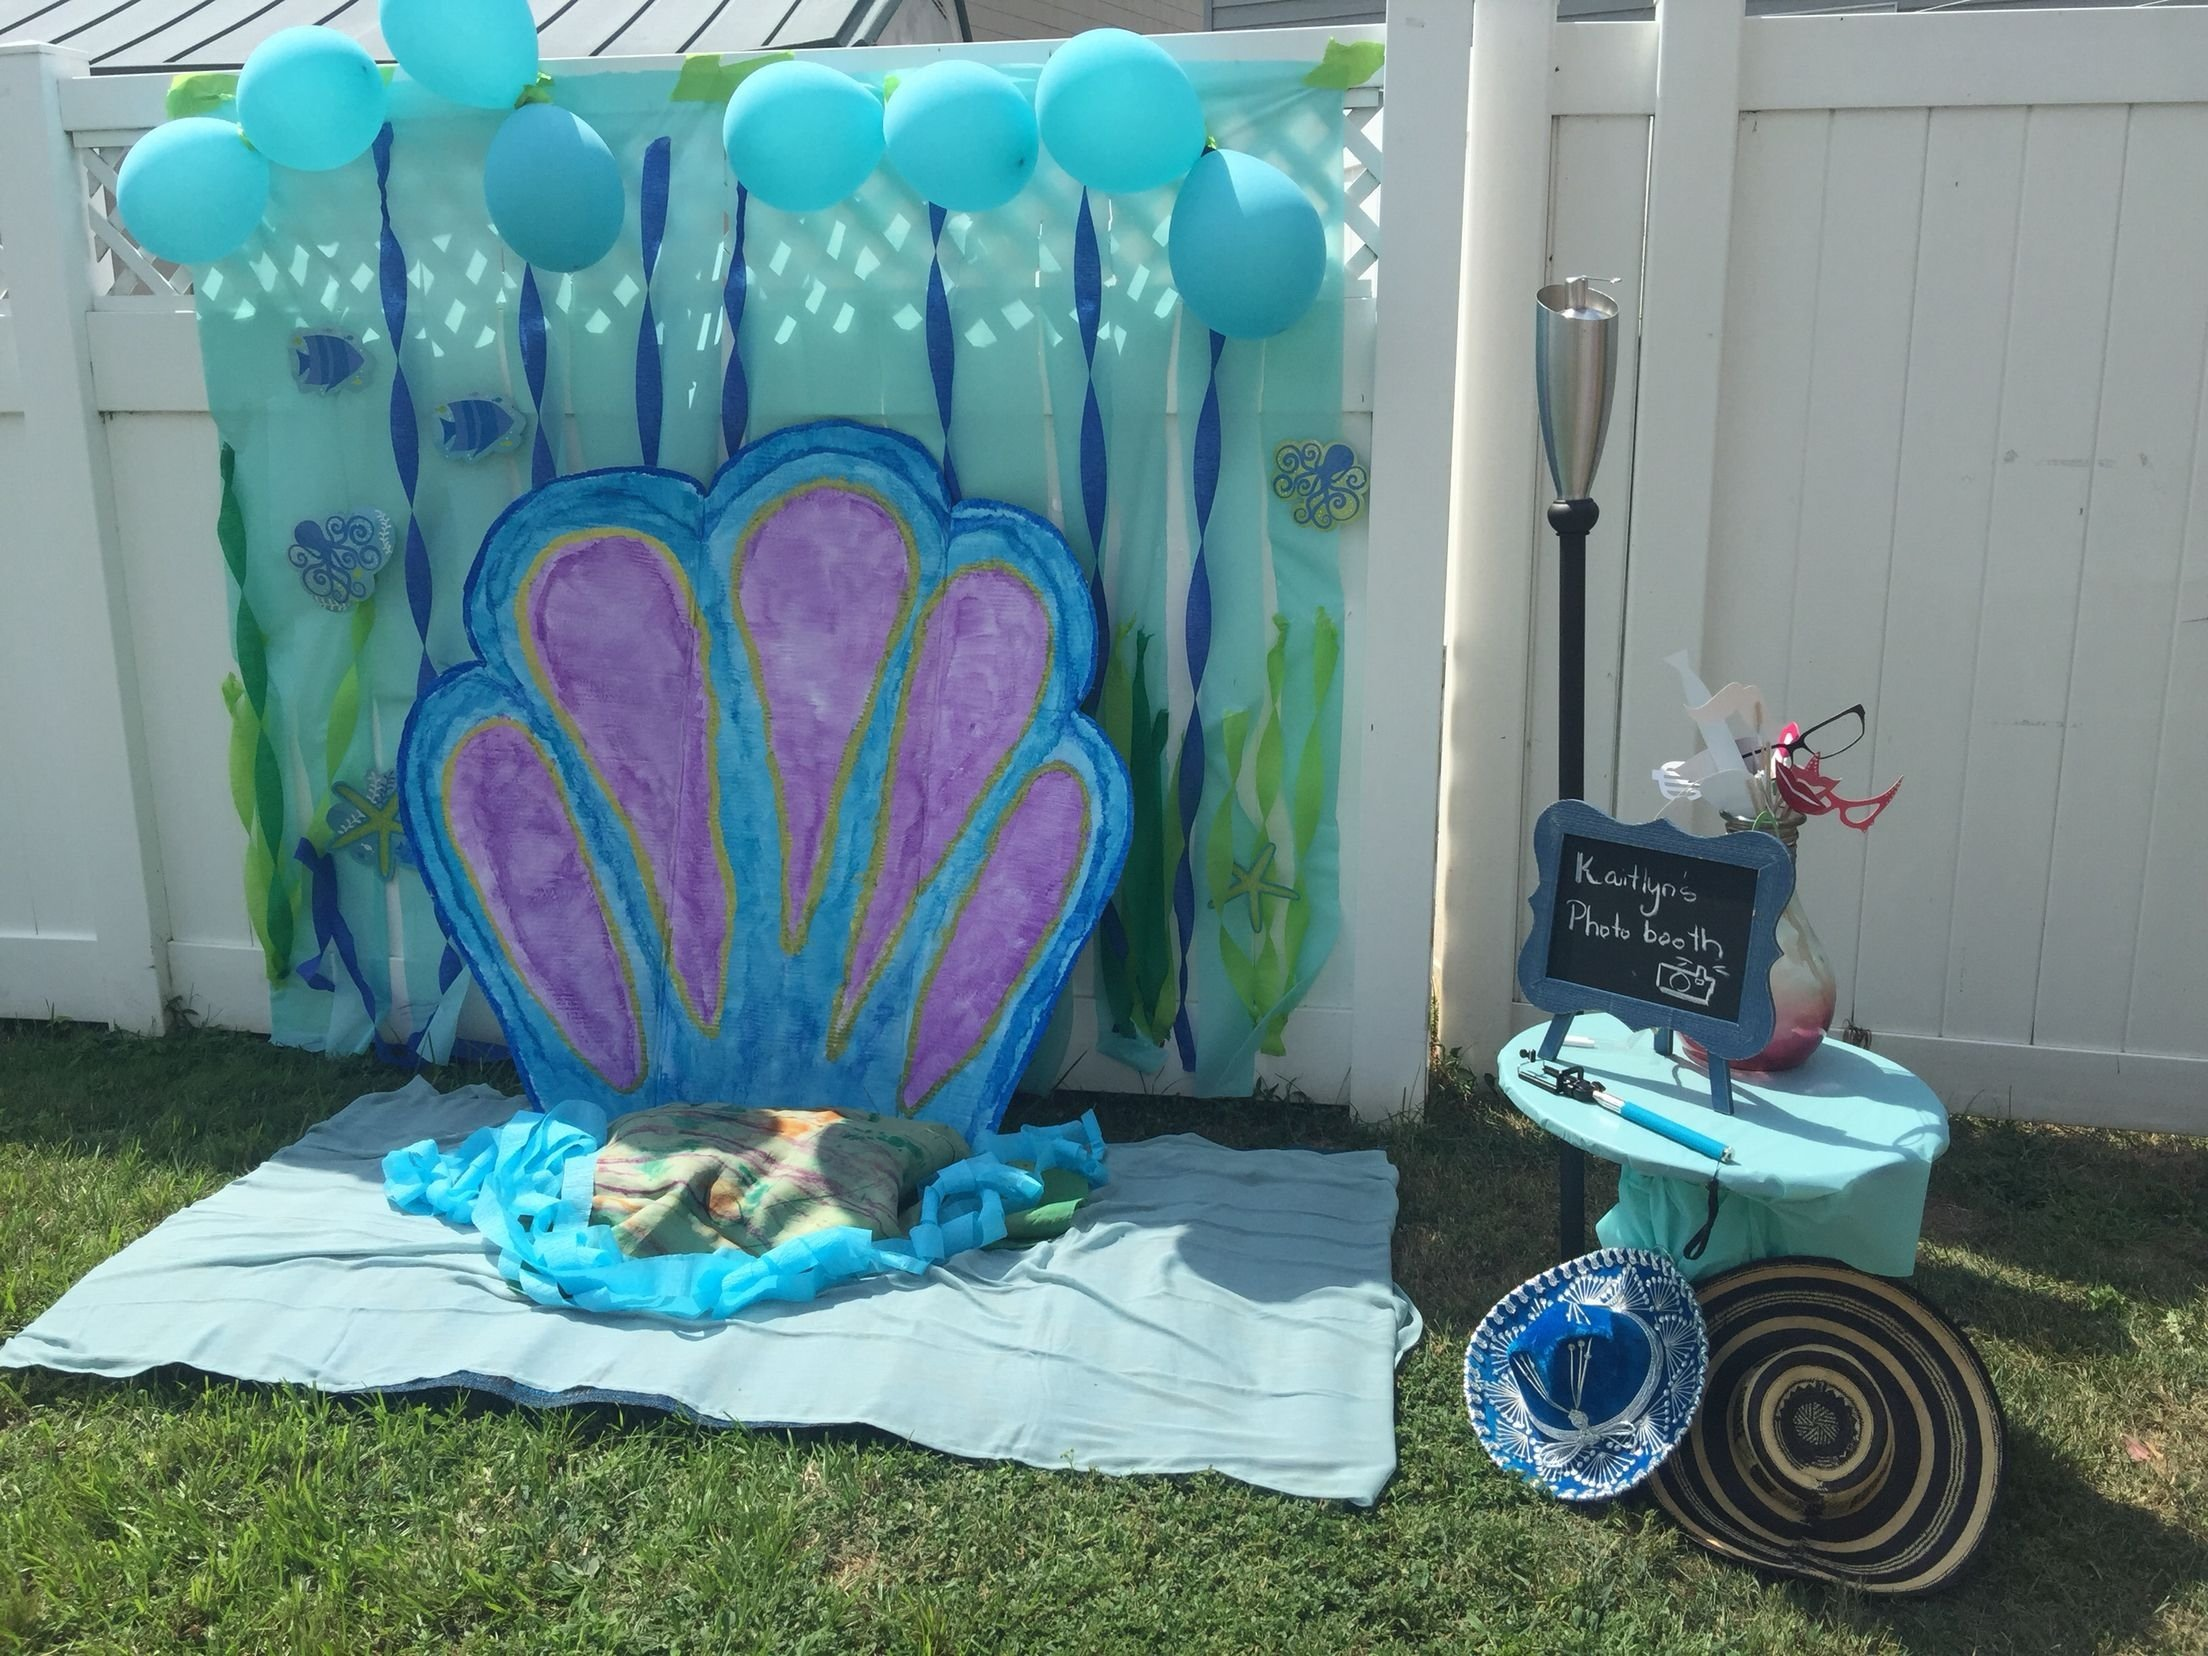 10 Gorgeous Under The Sea Theme Ideas photo booth background under the sea theme cute idea for under the 2021